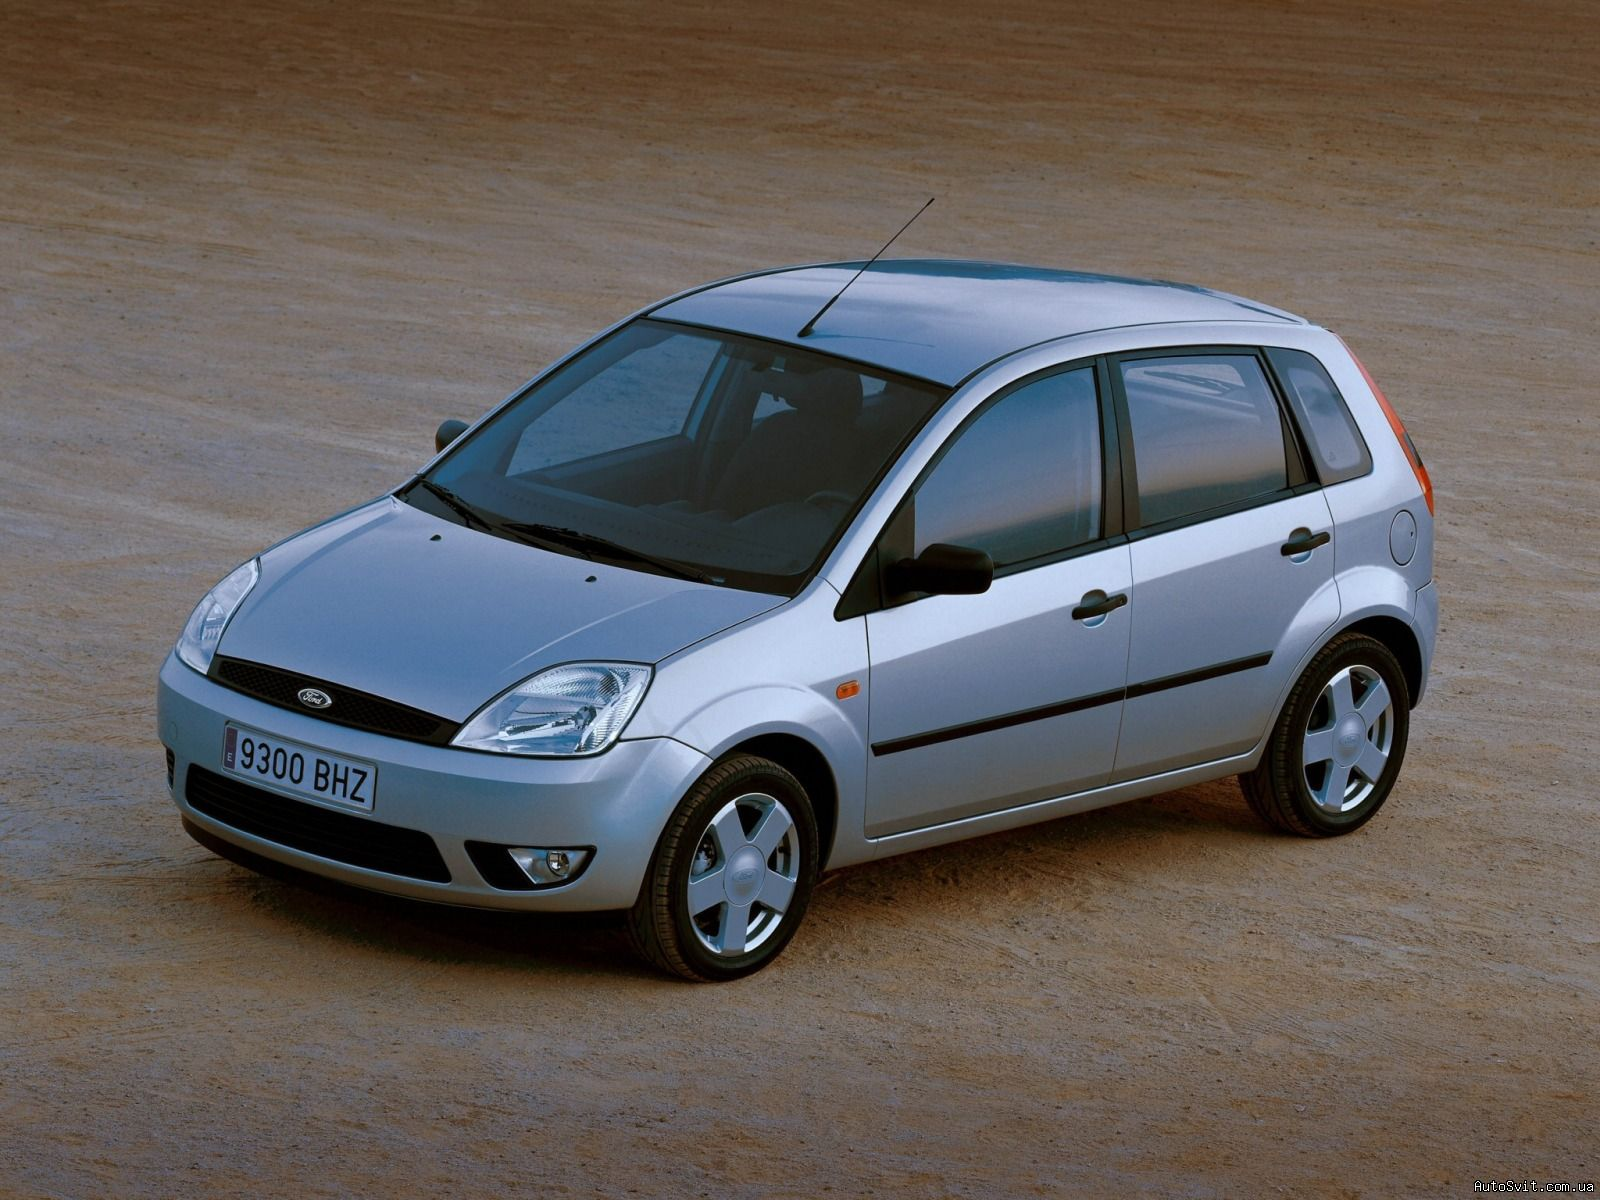 Ford Fiesta 2.0 2002 photo - 1